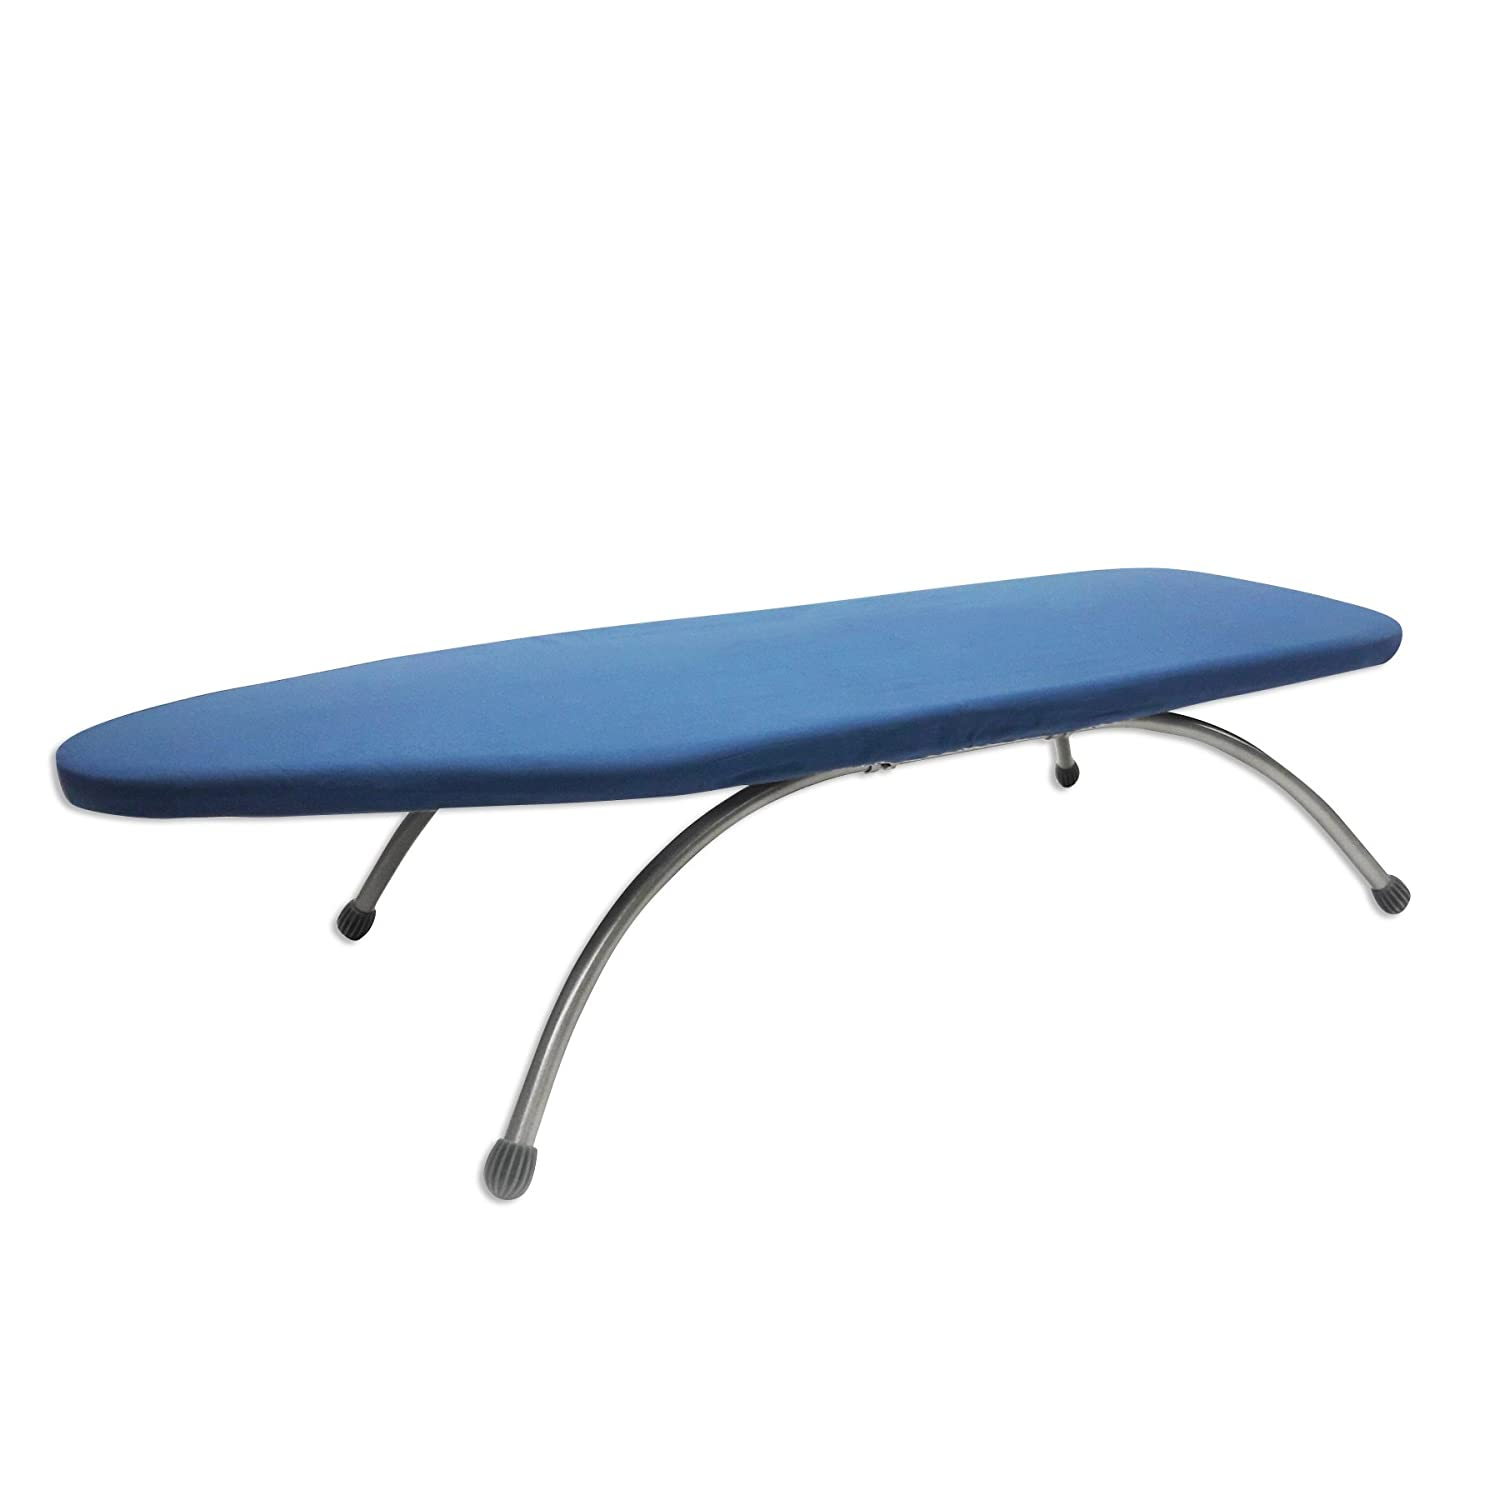 Homz Premium Steel Large Countertop Ironing Board, Anywhere Ironing Board, Blue Home Product International 4350075